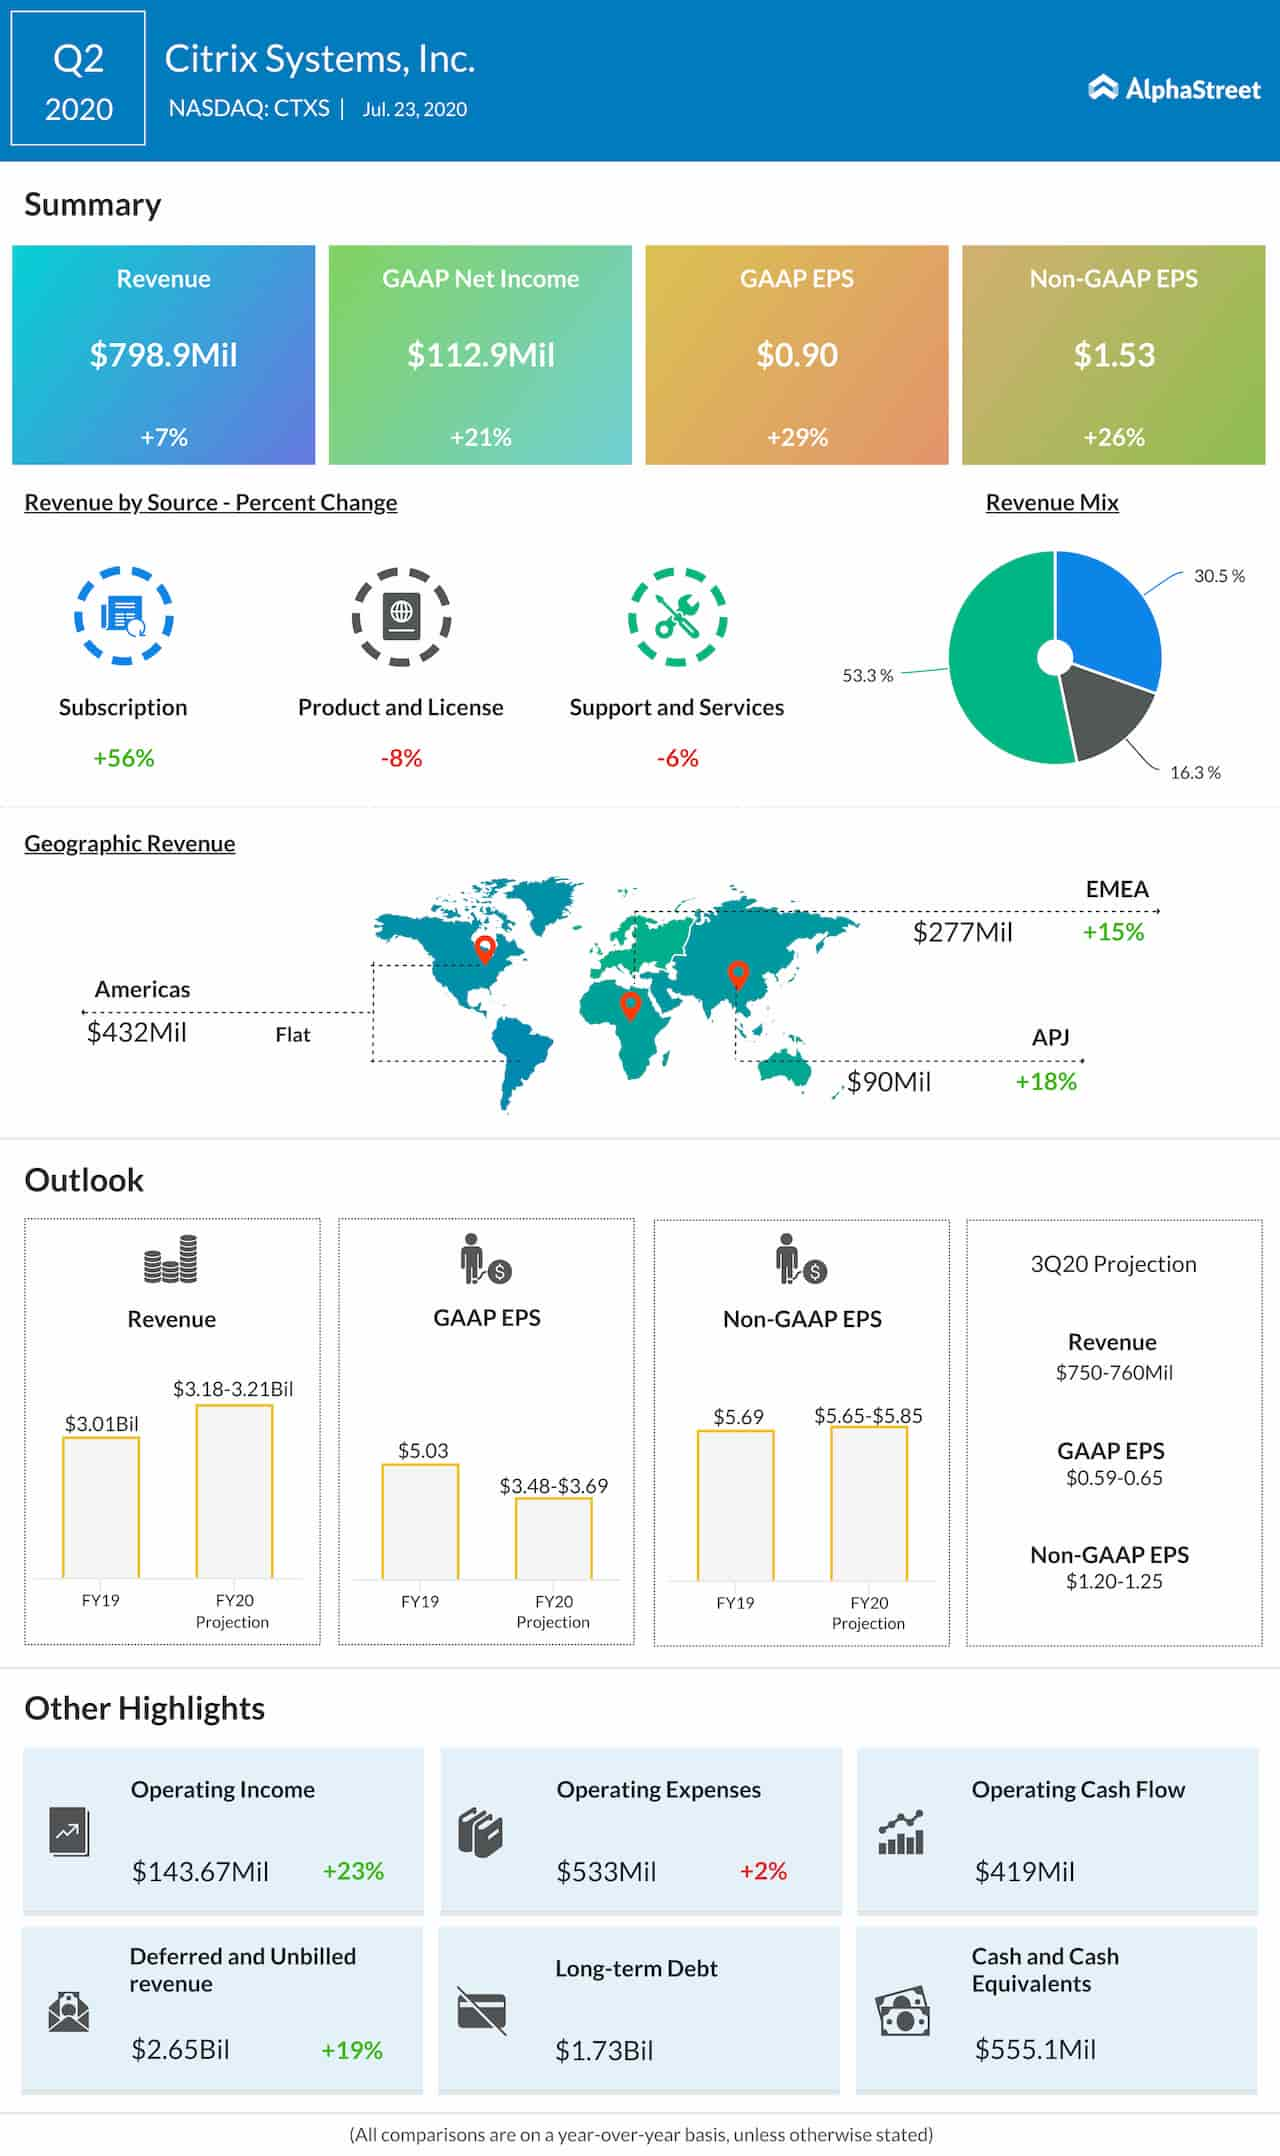 Citrix Systems (CTXS) Q2 2020 earnings infographic